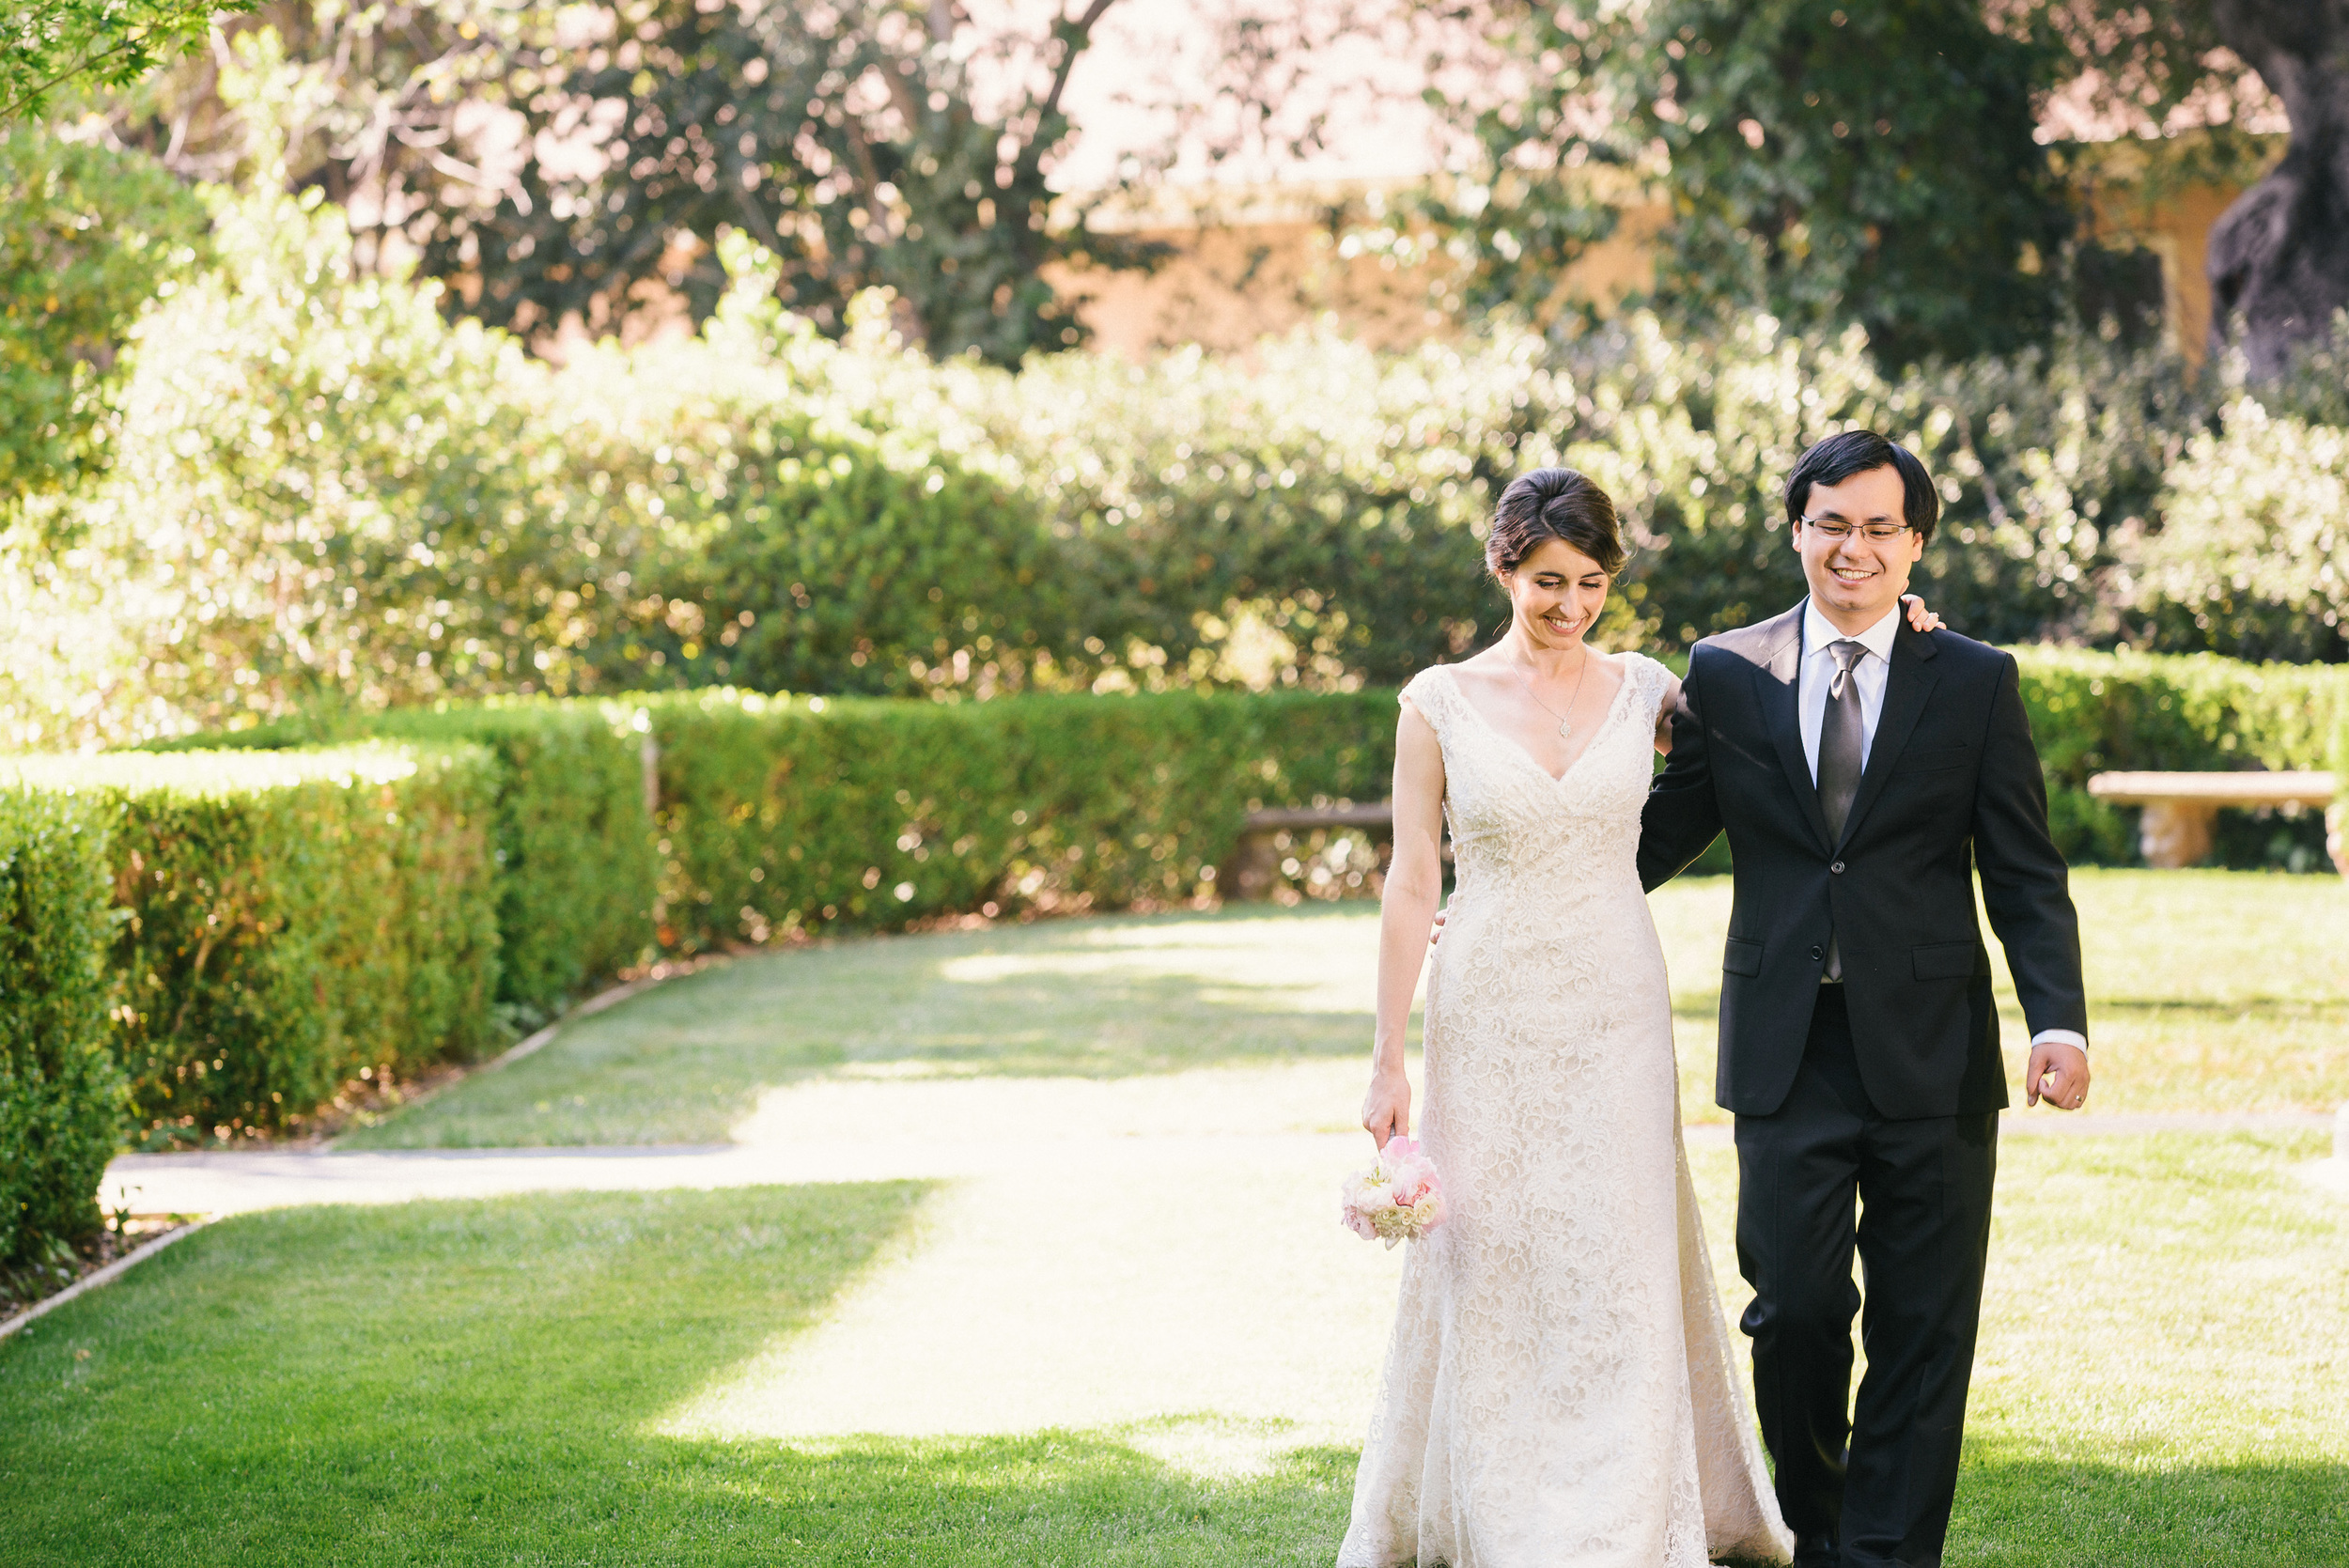 Jessie & Julian - Wedding at Stanford University, Palo Alto